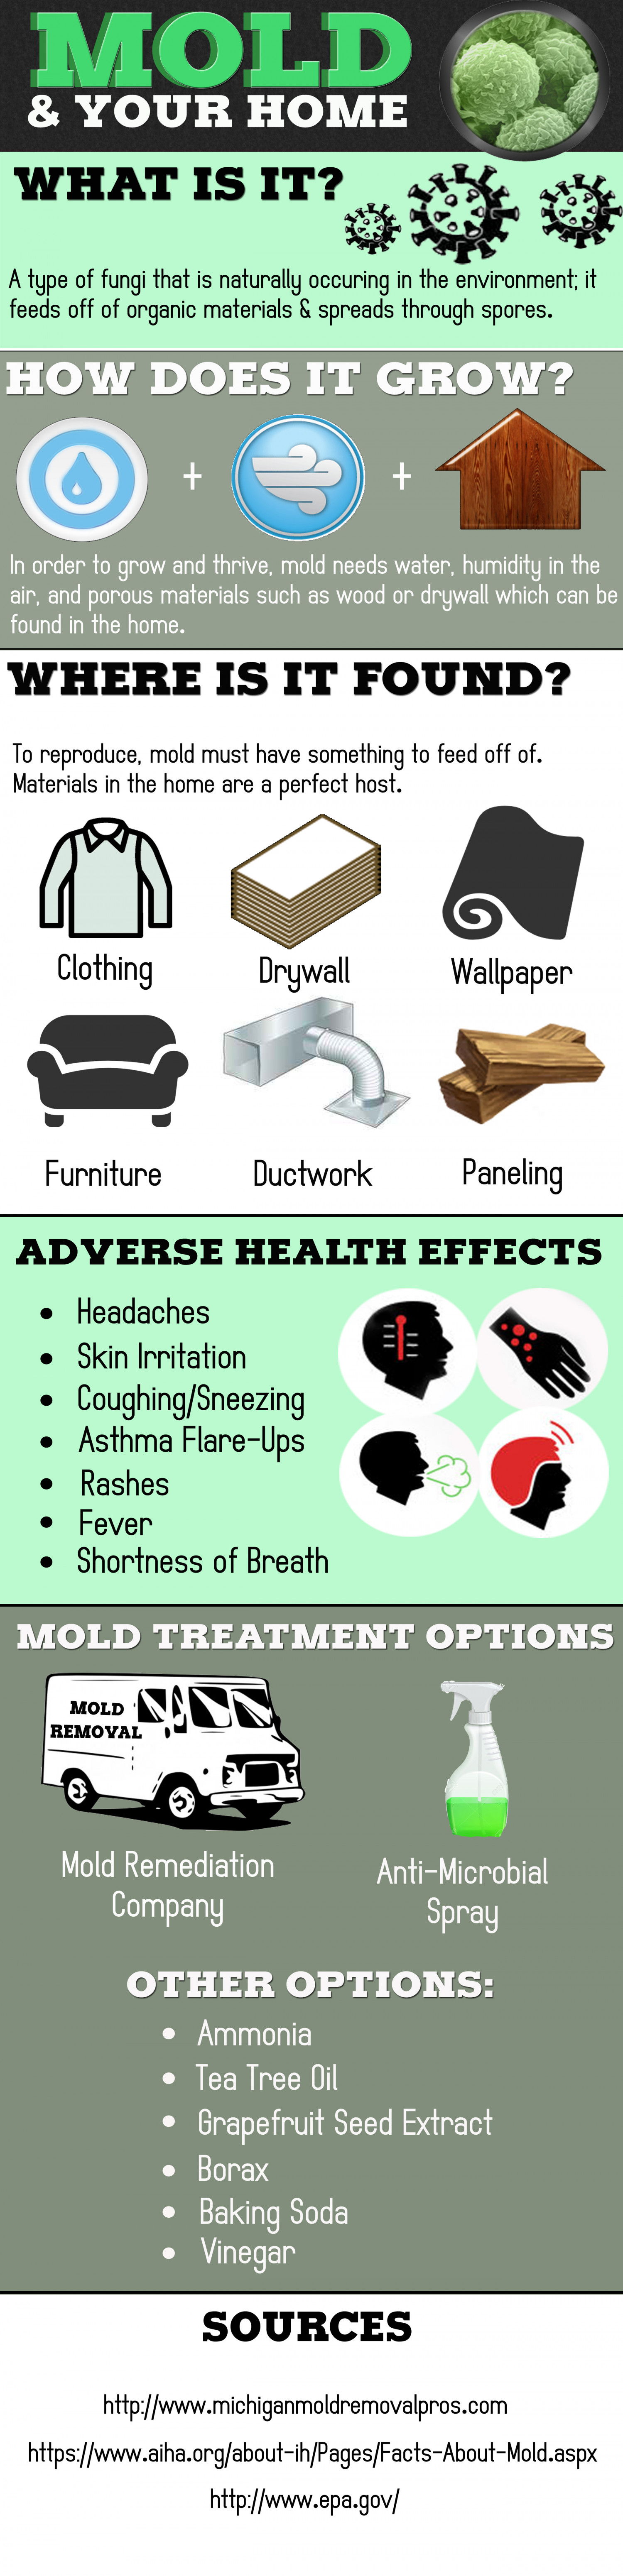 Mold & Your Home Infographic